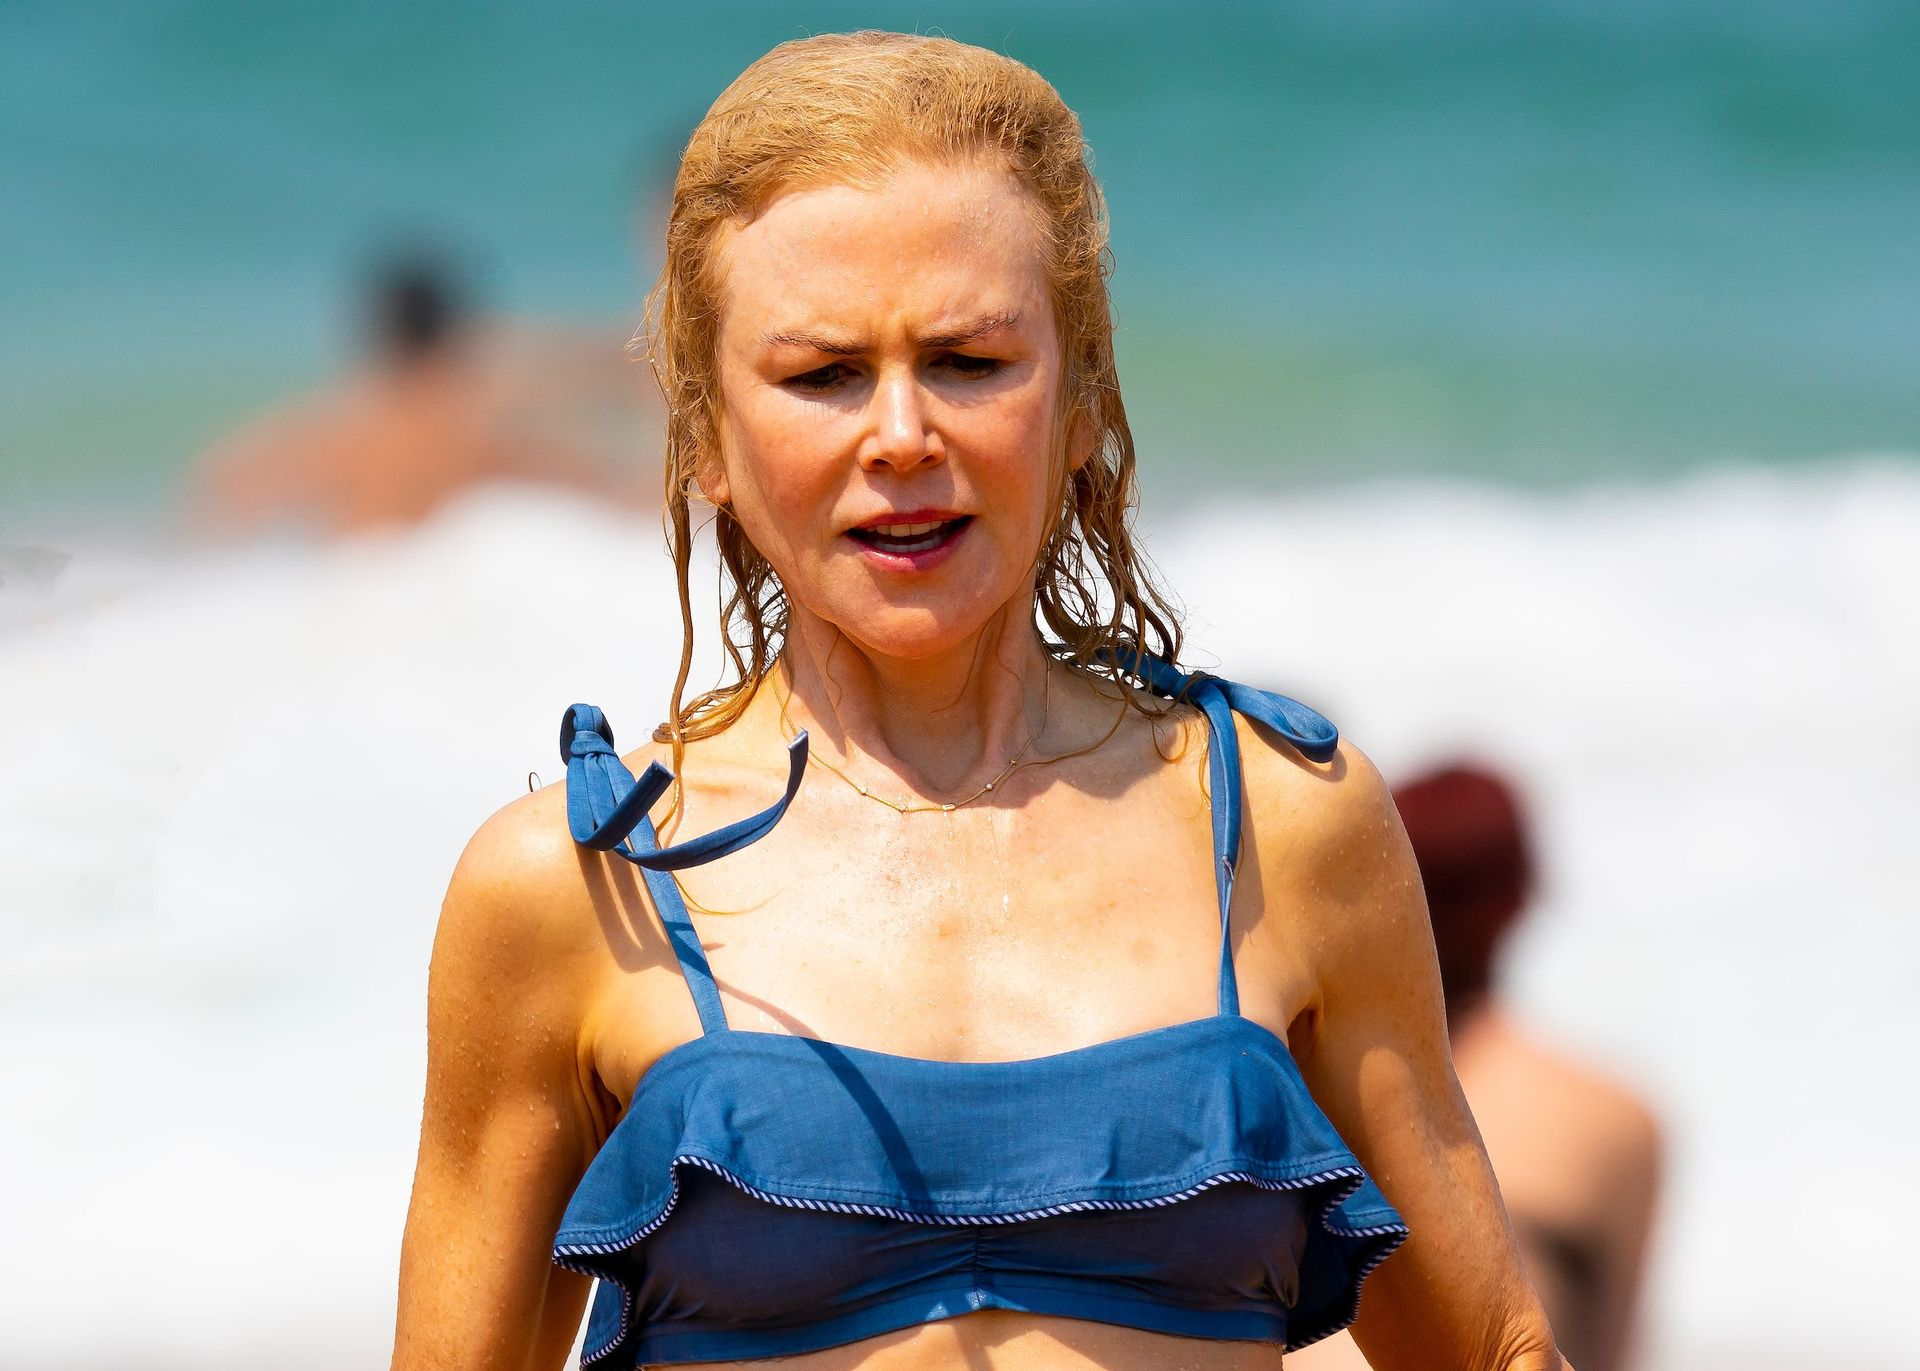 Nicole Kidman Hits The Beach While In Sydney With Her Family 0085